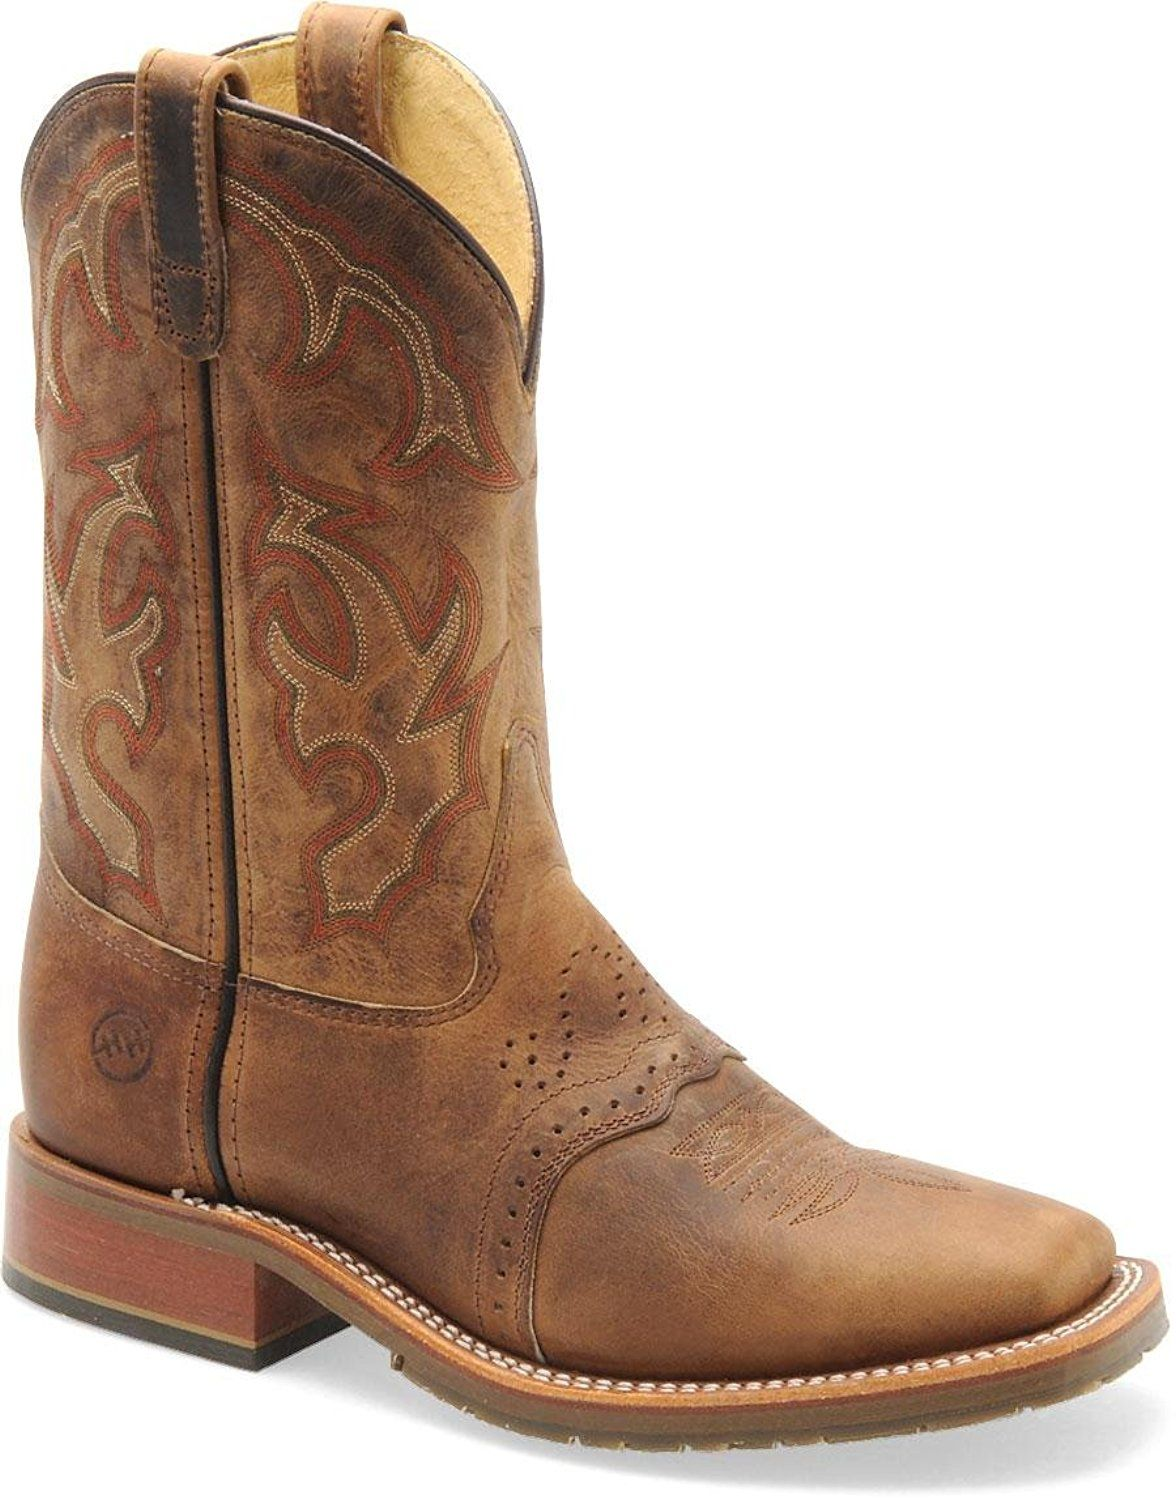 a9708dfdafbfc Double H Boot - Mens - 11 Inch Domestic Square Toe Ice Roper ** This ...